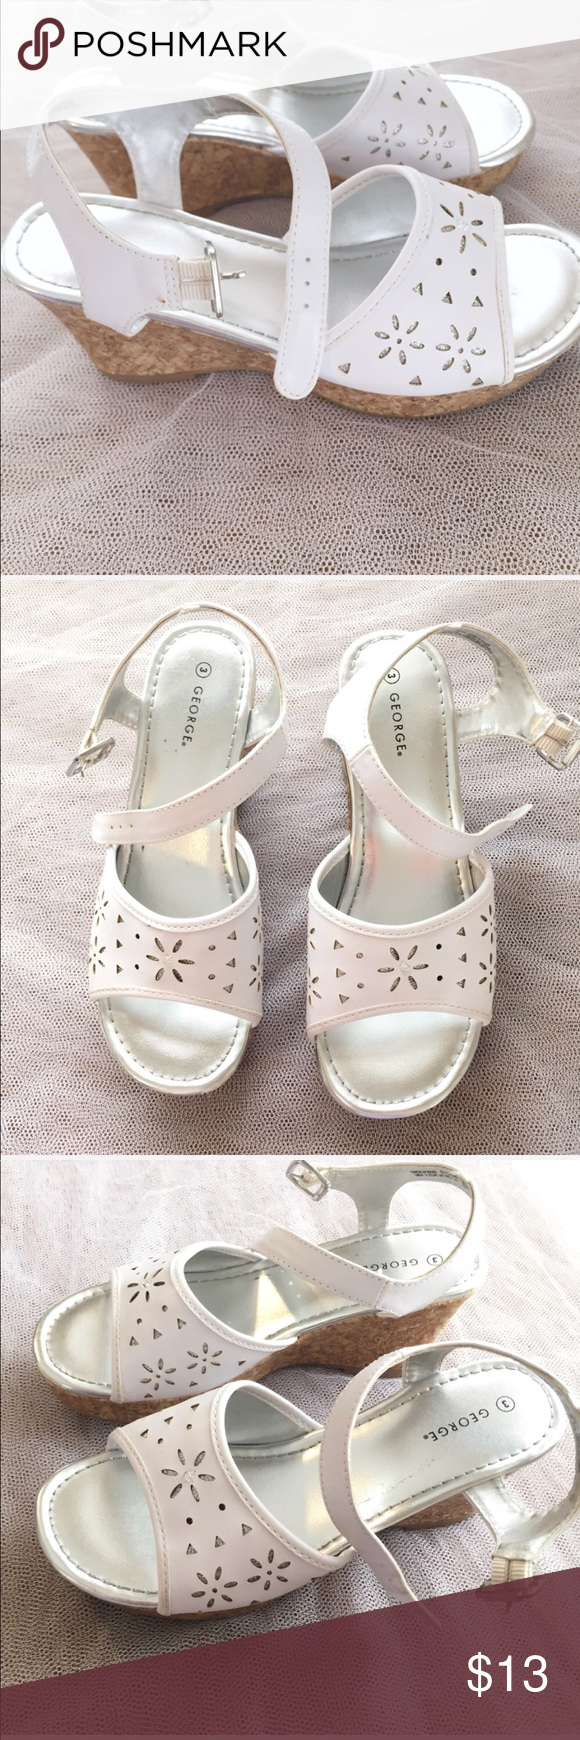 Silver Wedge Sandals Size